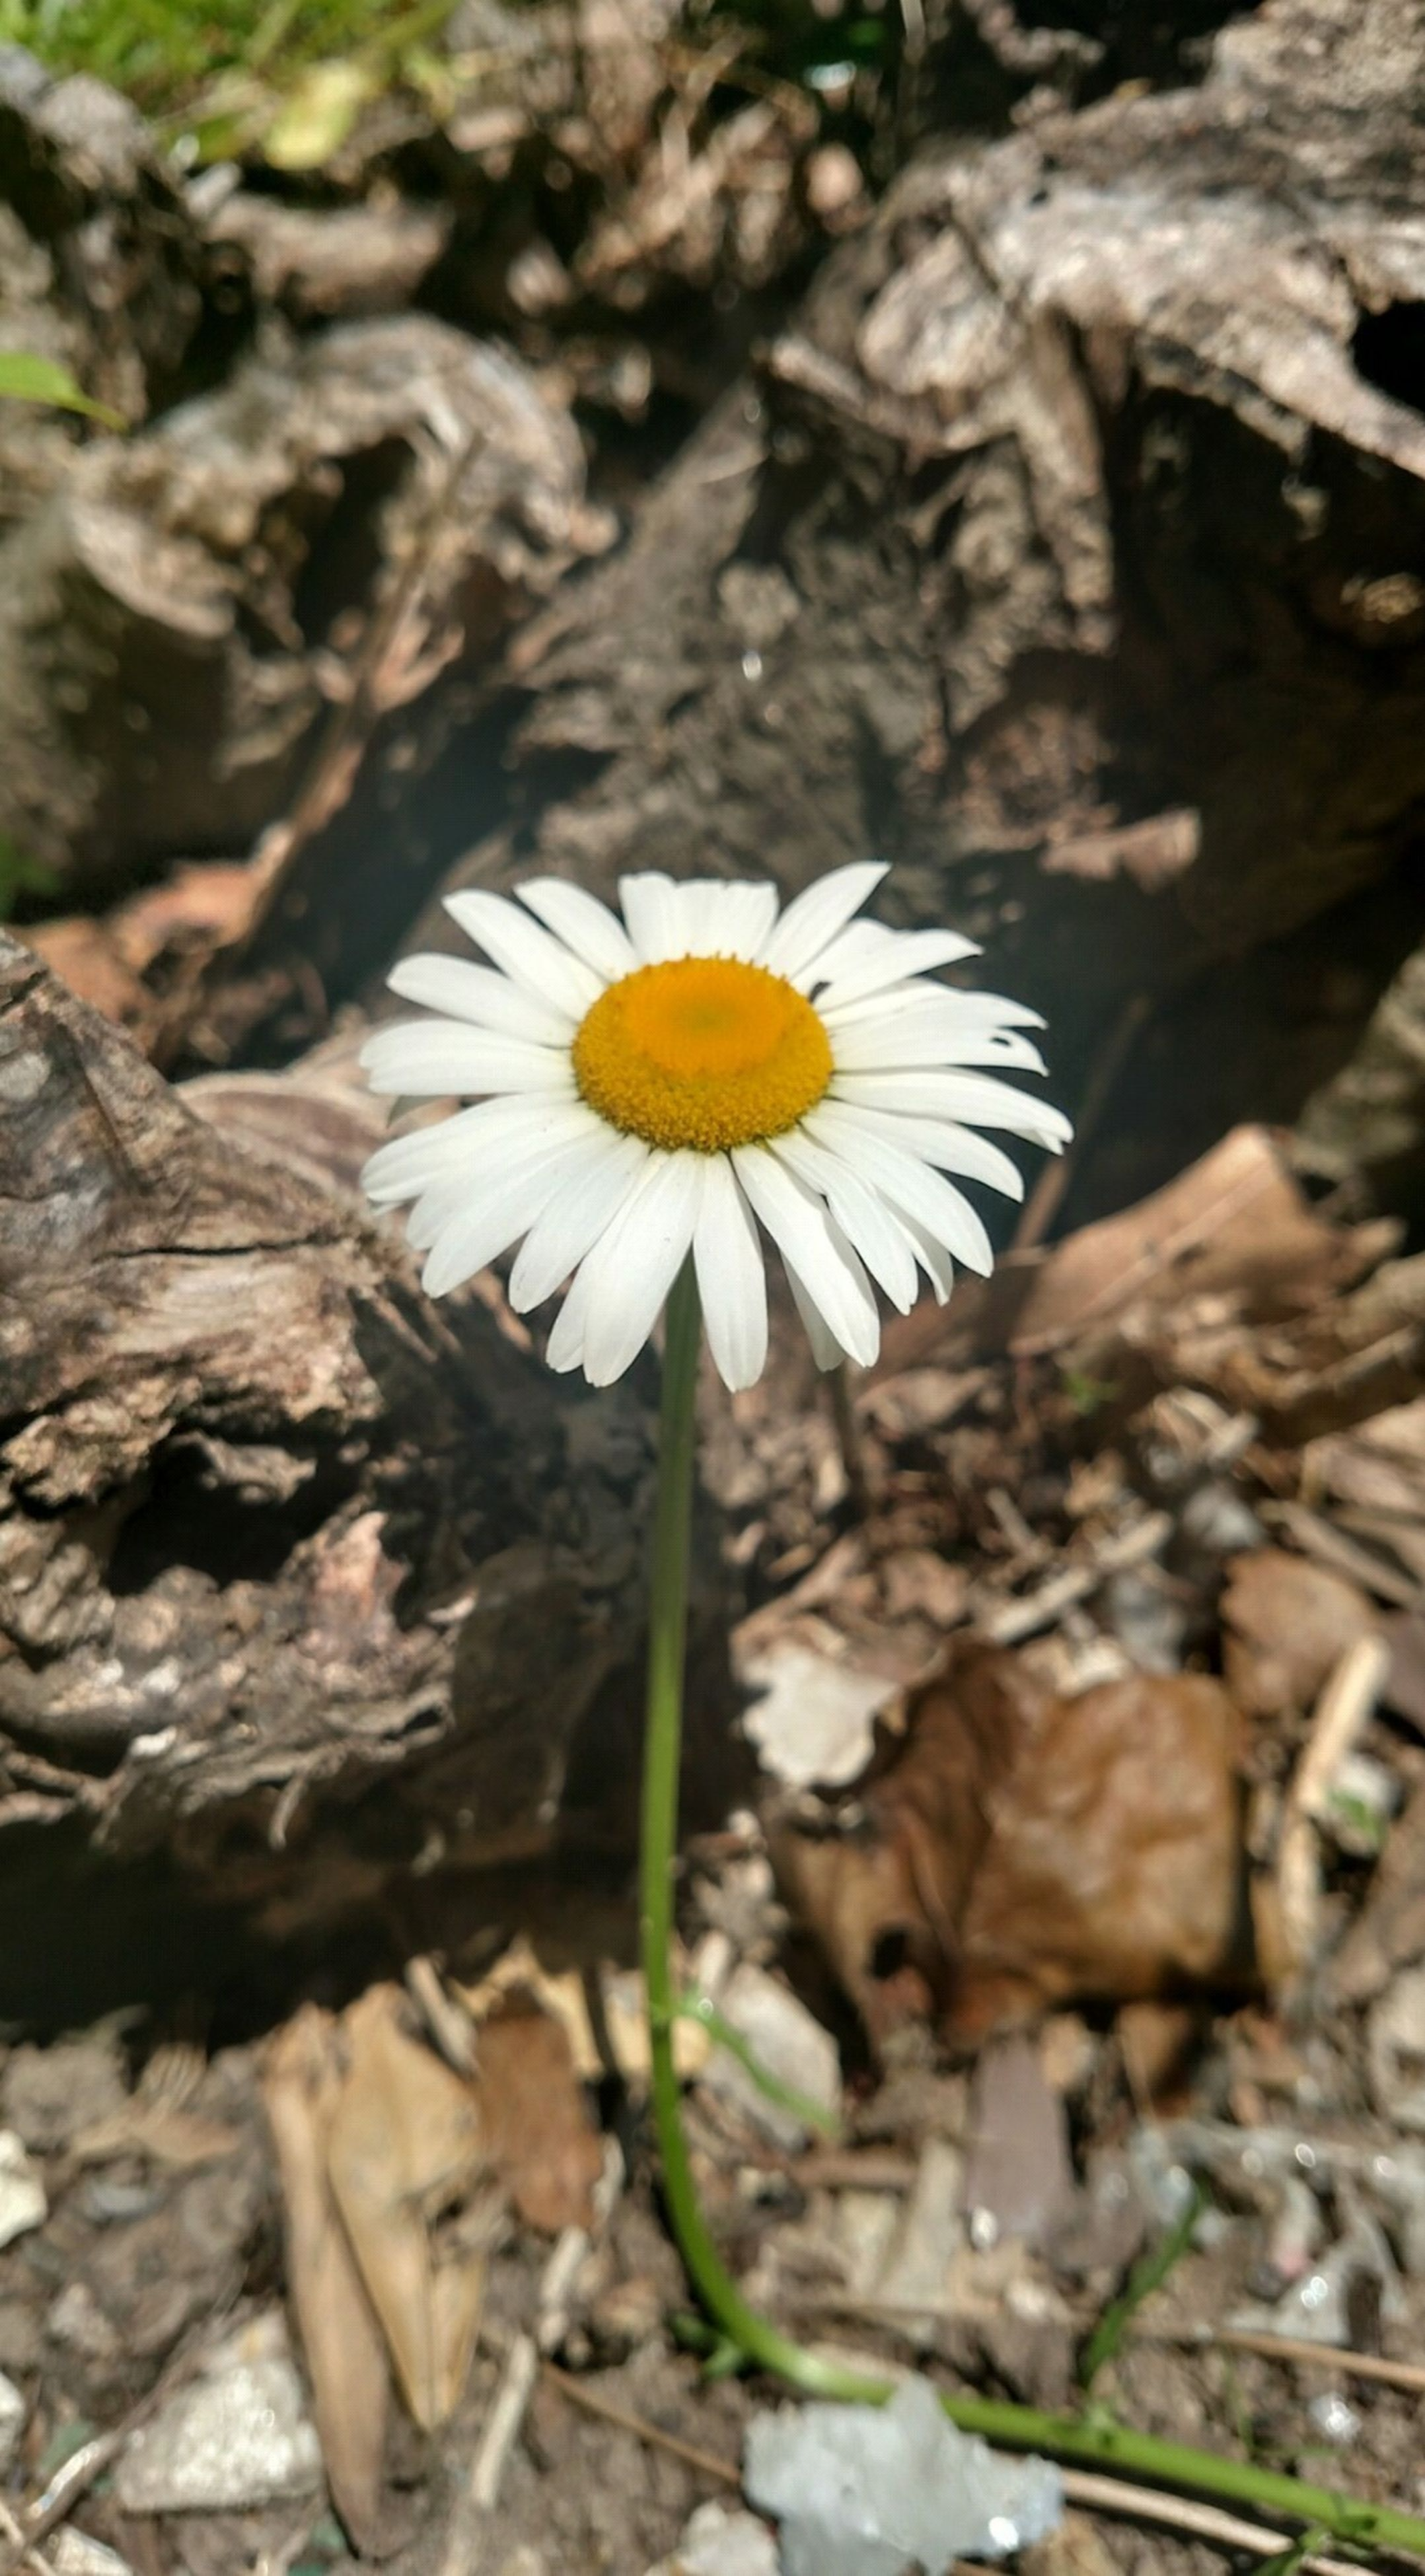 flower, fragility, flower head, petal, freshness, growth, single flower, close-up, nature, beauty in nature, white color, blooming, focus on foreground, plant, pollen, field, daisy, yellow, high angle view, uncultivated